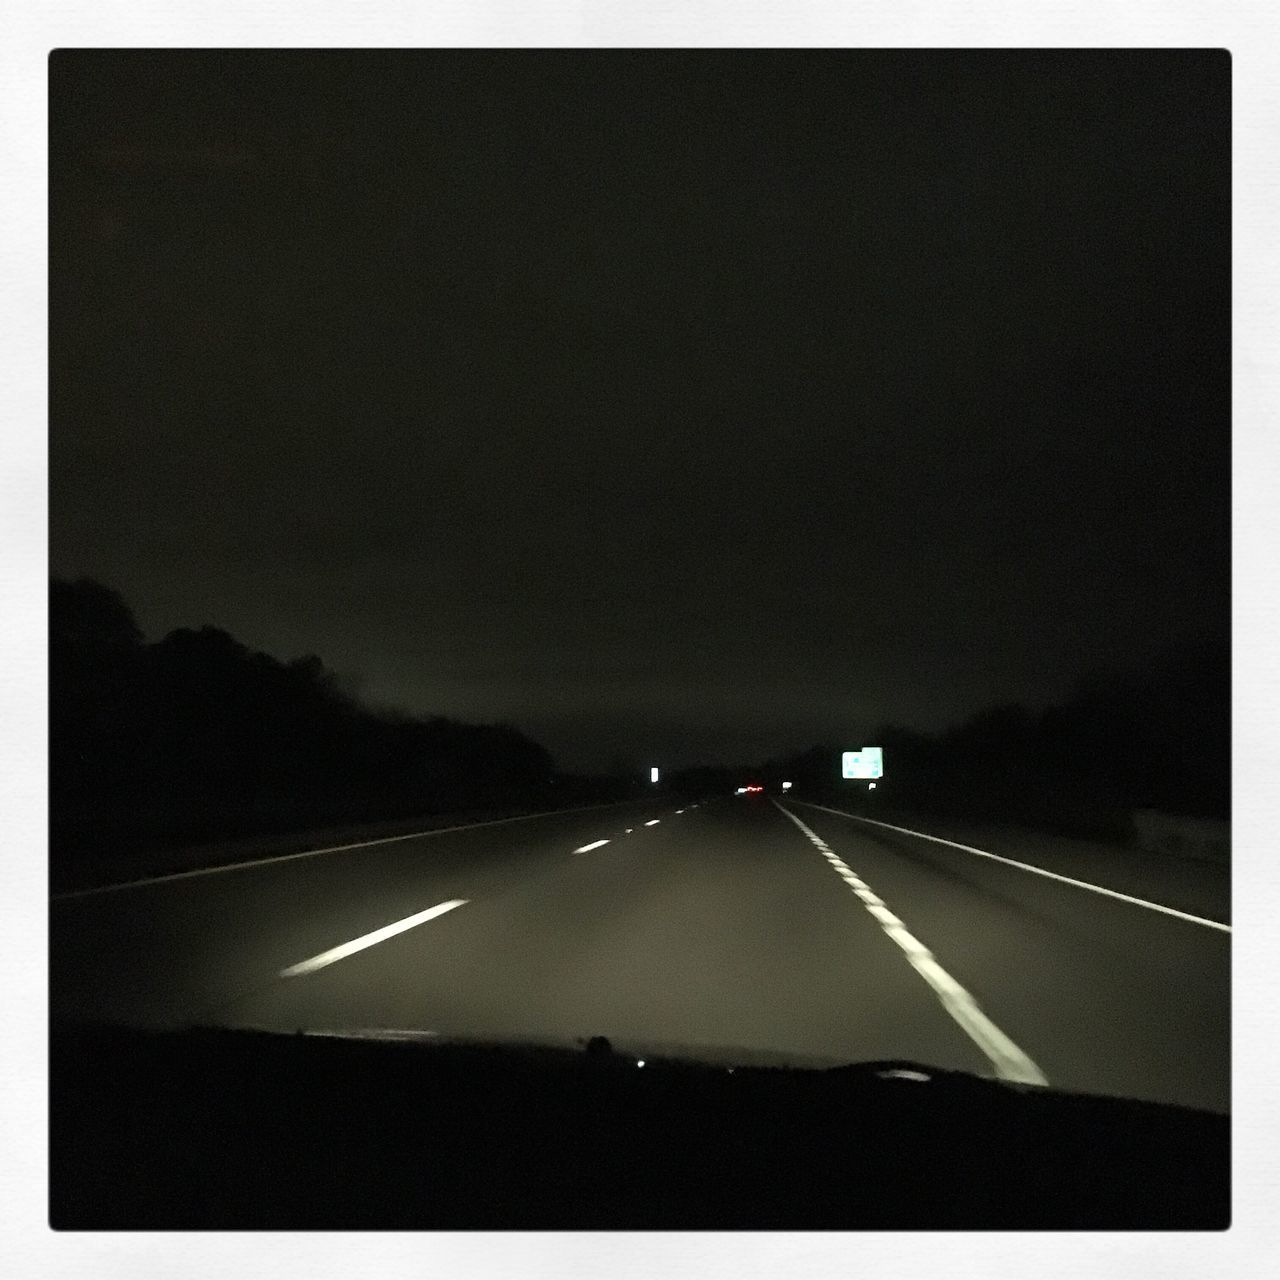 Road Road At Night Driving Highway Interstate Driving At Night Roadtrip Moody Night Lights In Distance Lights In Darkness Cruising